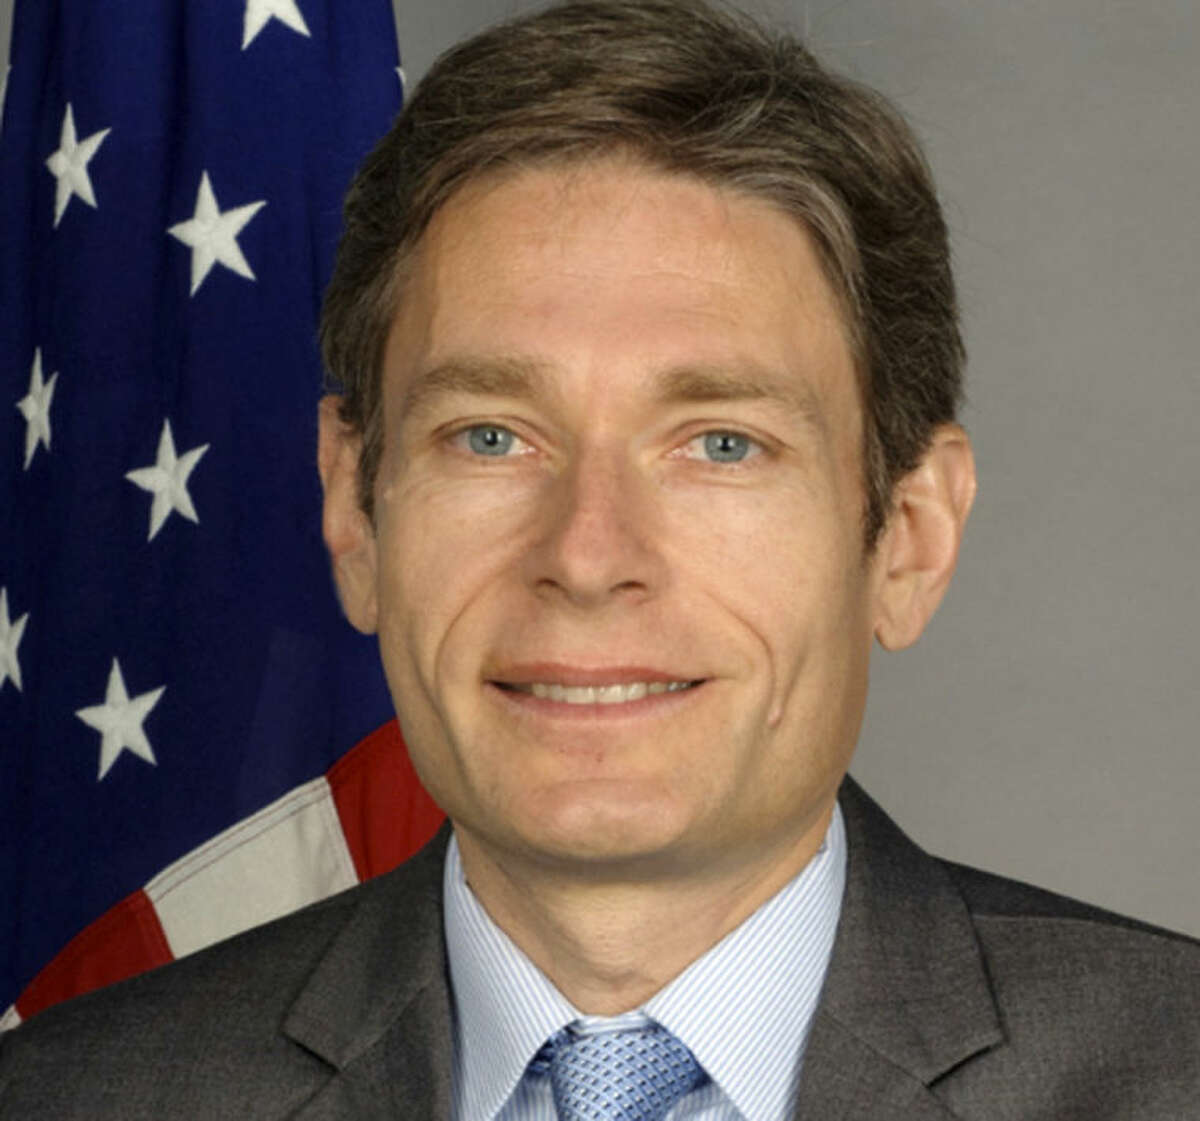 FILE - This undated photo from the U.S. State Department website shows Tom Malinowski. Malinowski, the U.S. State Department?'s top human rights official has accused Myanmar authorities of resorting to police-state tactics after five journalists got 10 years hard labor for a disputed story about a weapons factory. Malinowski's comments, in an Associated Press interview Wednesday, July 16, 2014, are the stiffest U.S. criticism yet following last week?'s sentences. The case is troubling for the Obama administration, which has cast its support of Myanmar's democratic reforms as an important foreign policy achievement. (AP Photo/U.S. State Department)